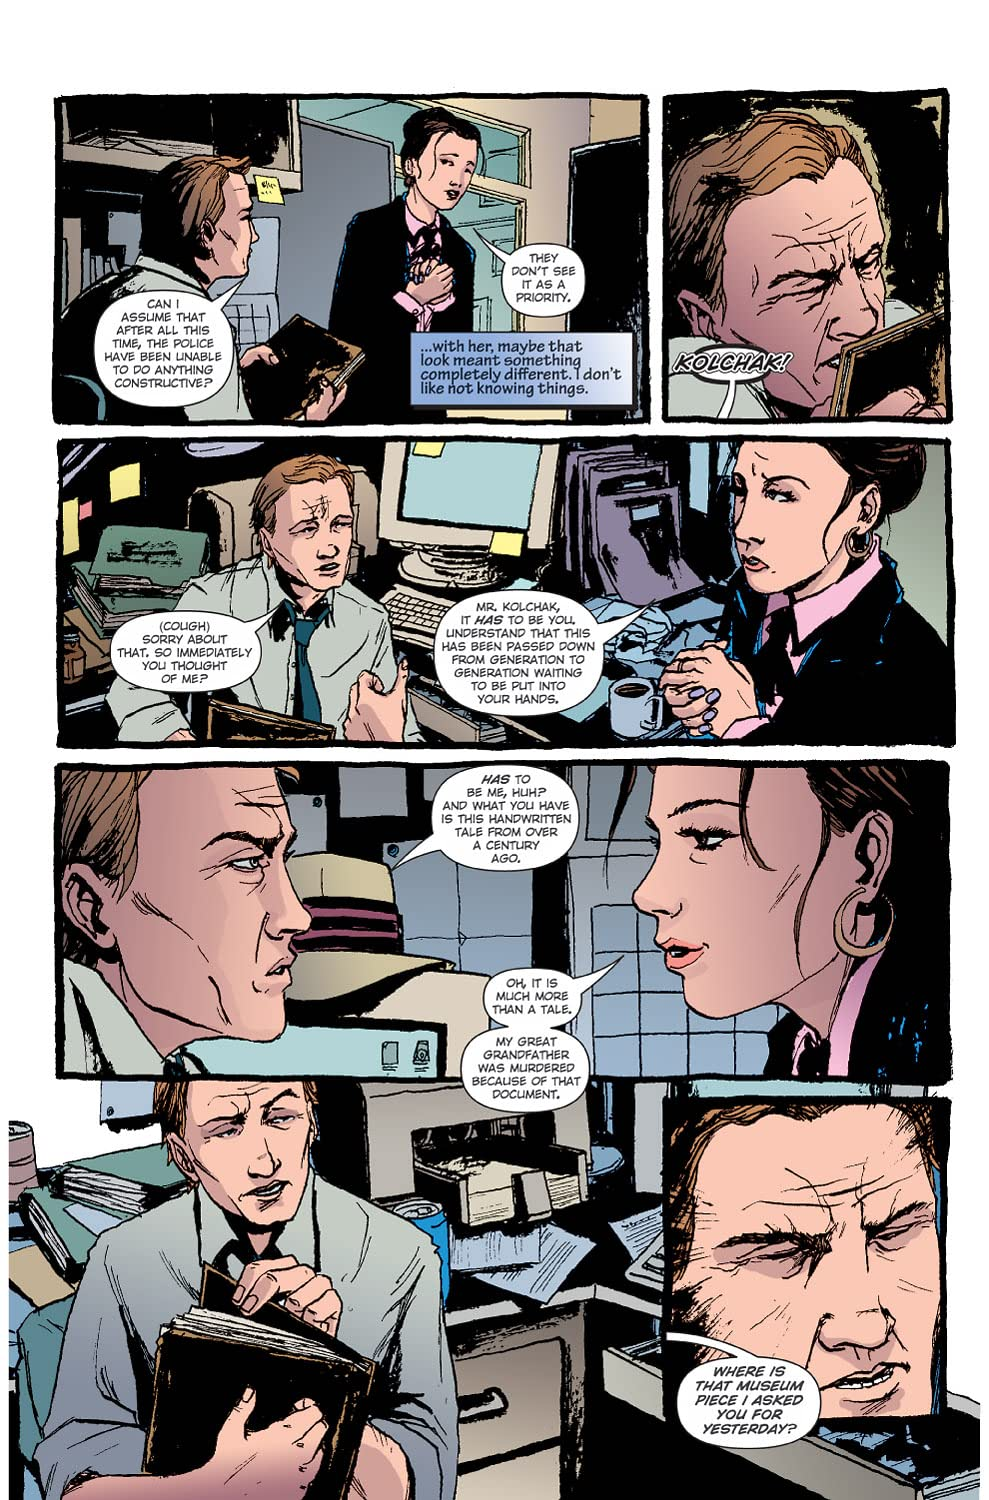 Sherlock Holmes & Kolchak: The Night Stalker #1 (of 3)